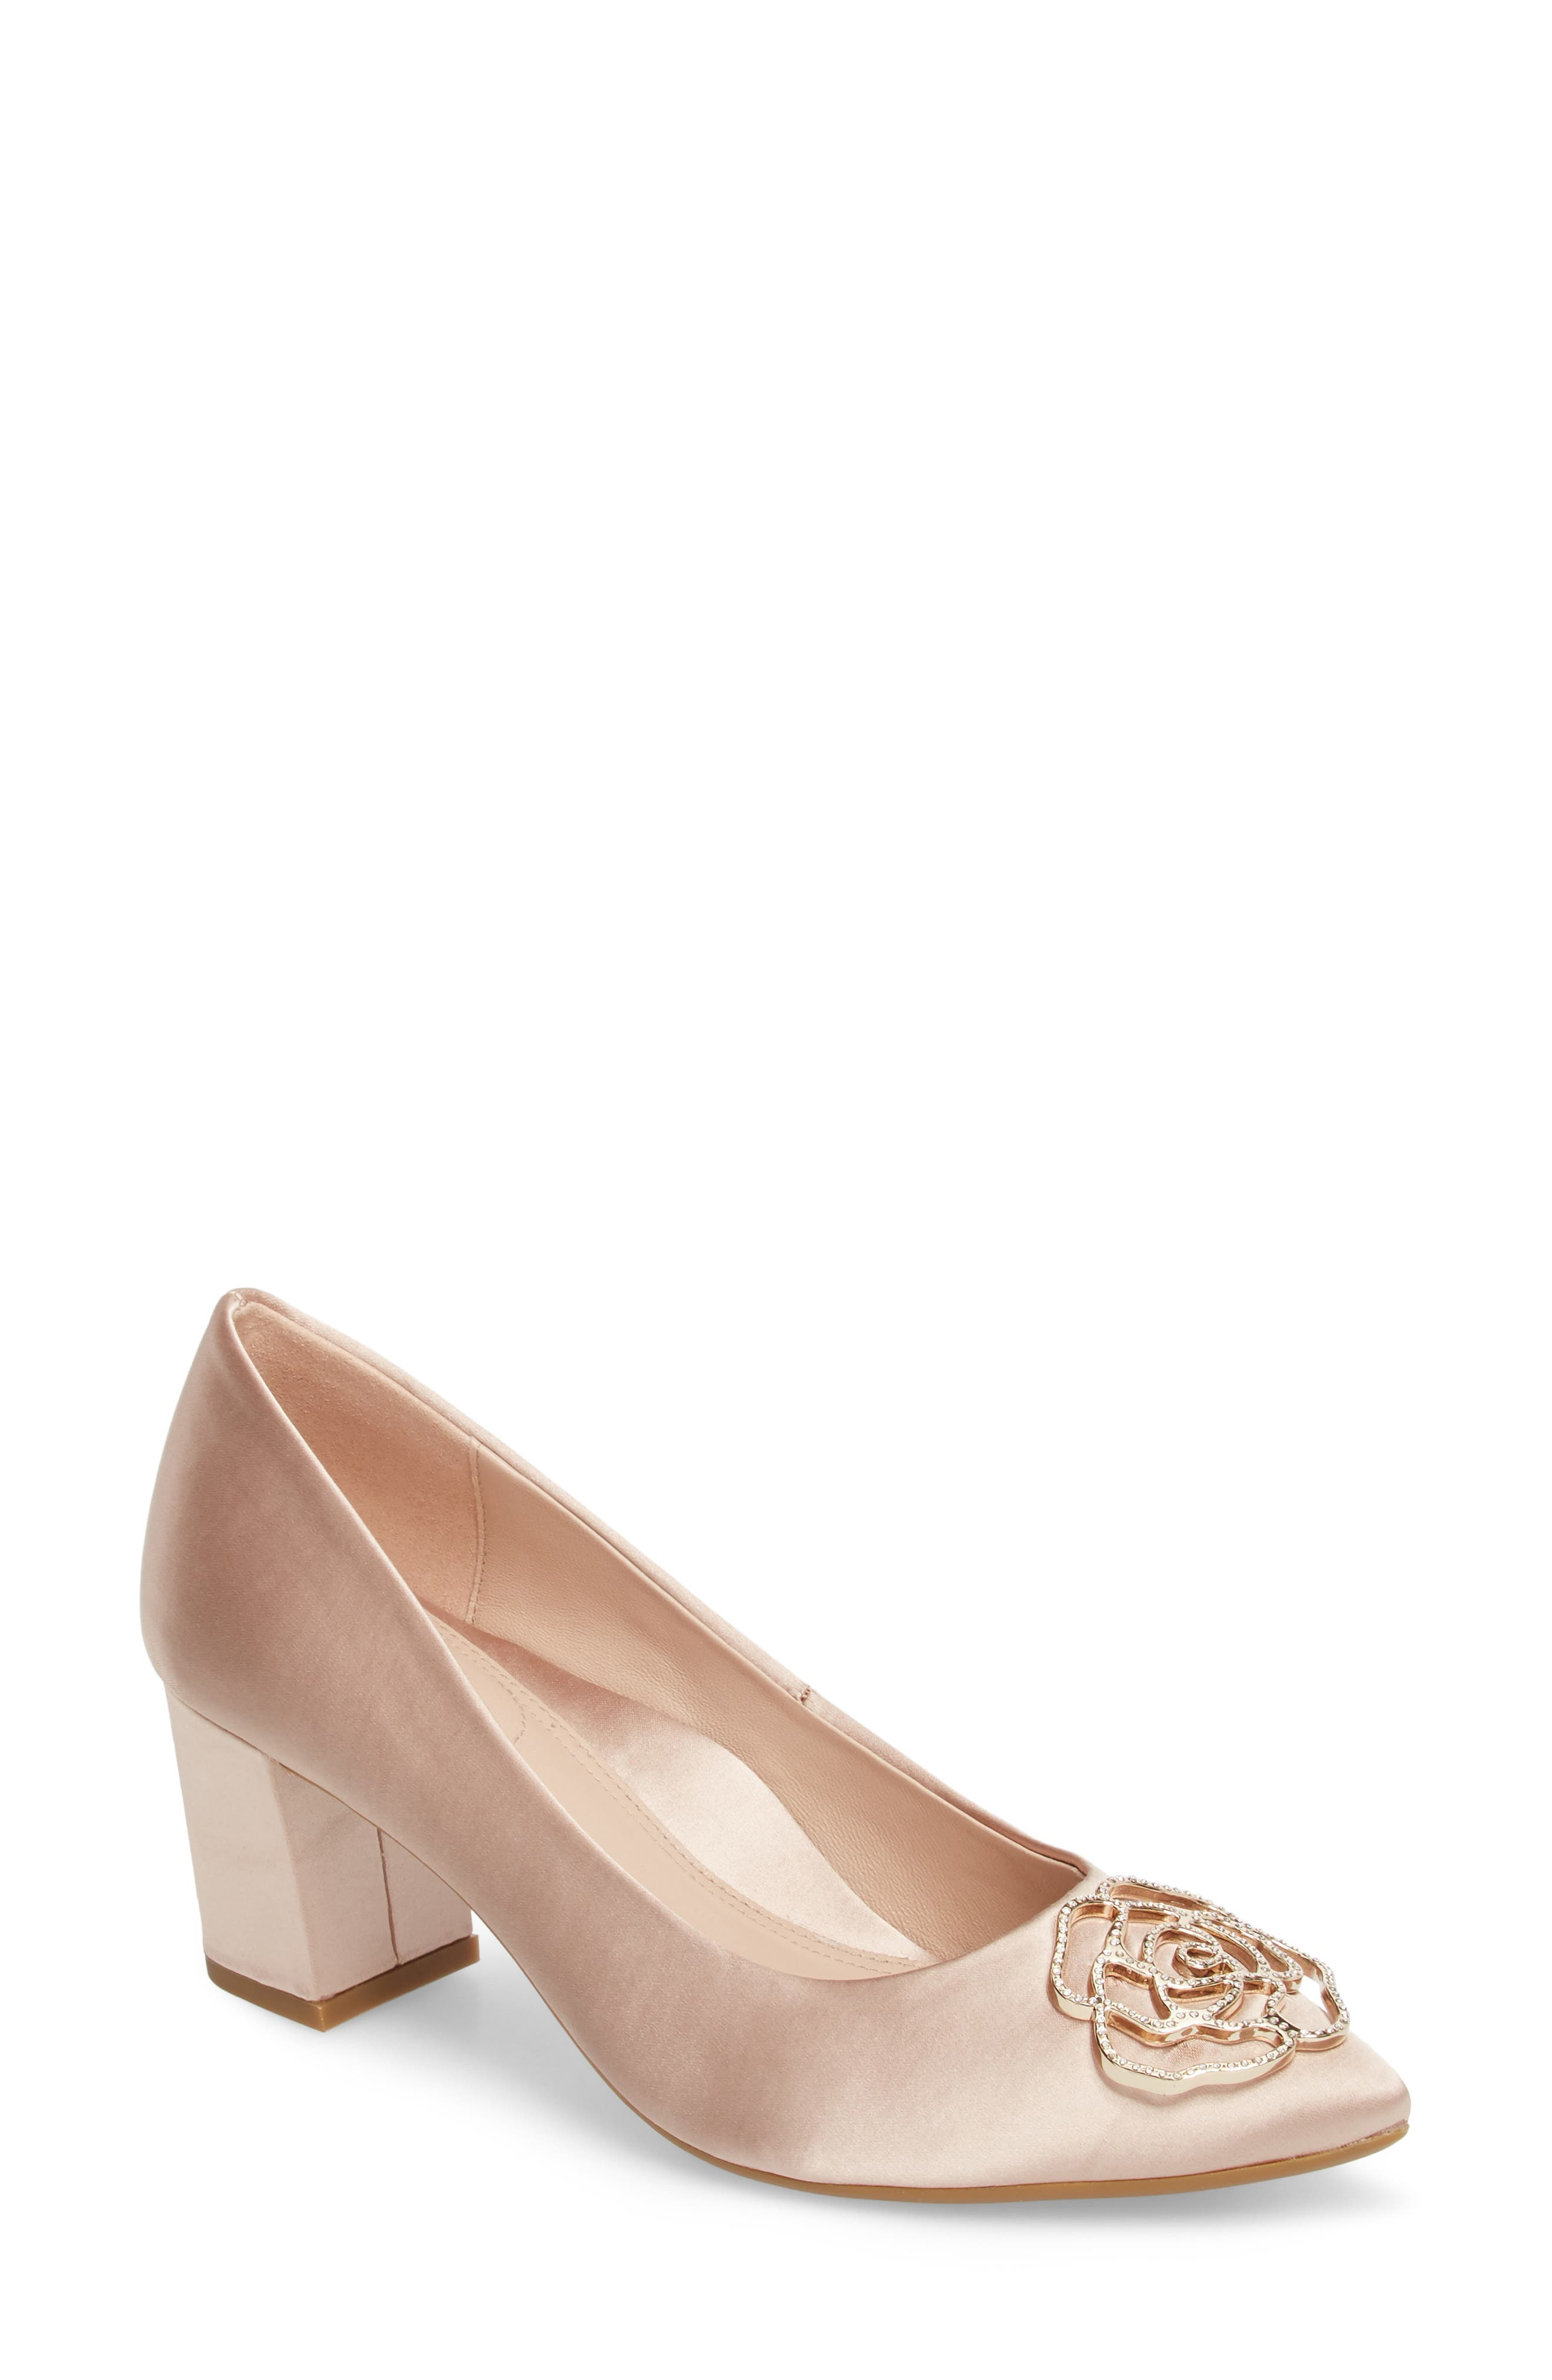 Maci Pump,                         Main,                         color, Blush Satin Fabric